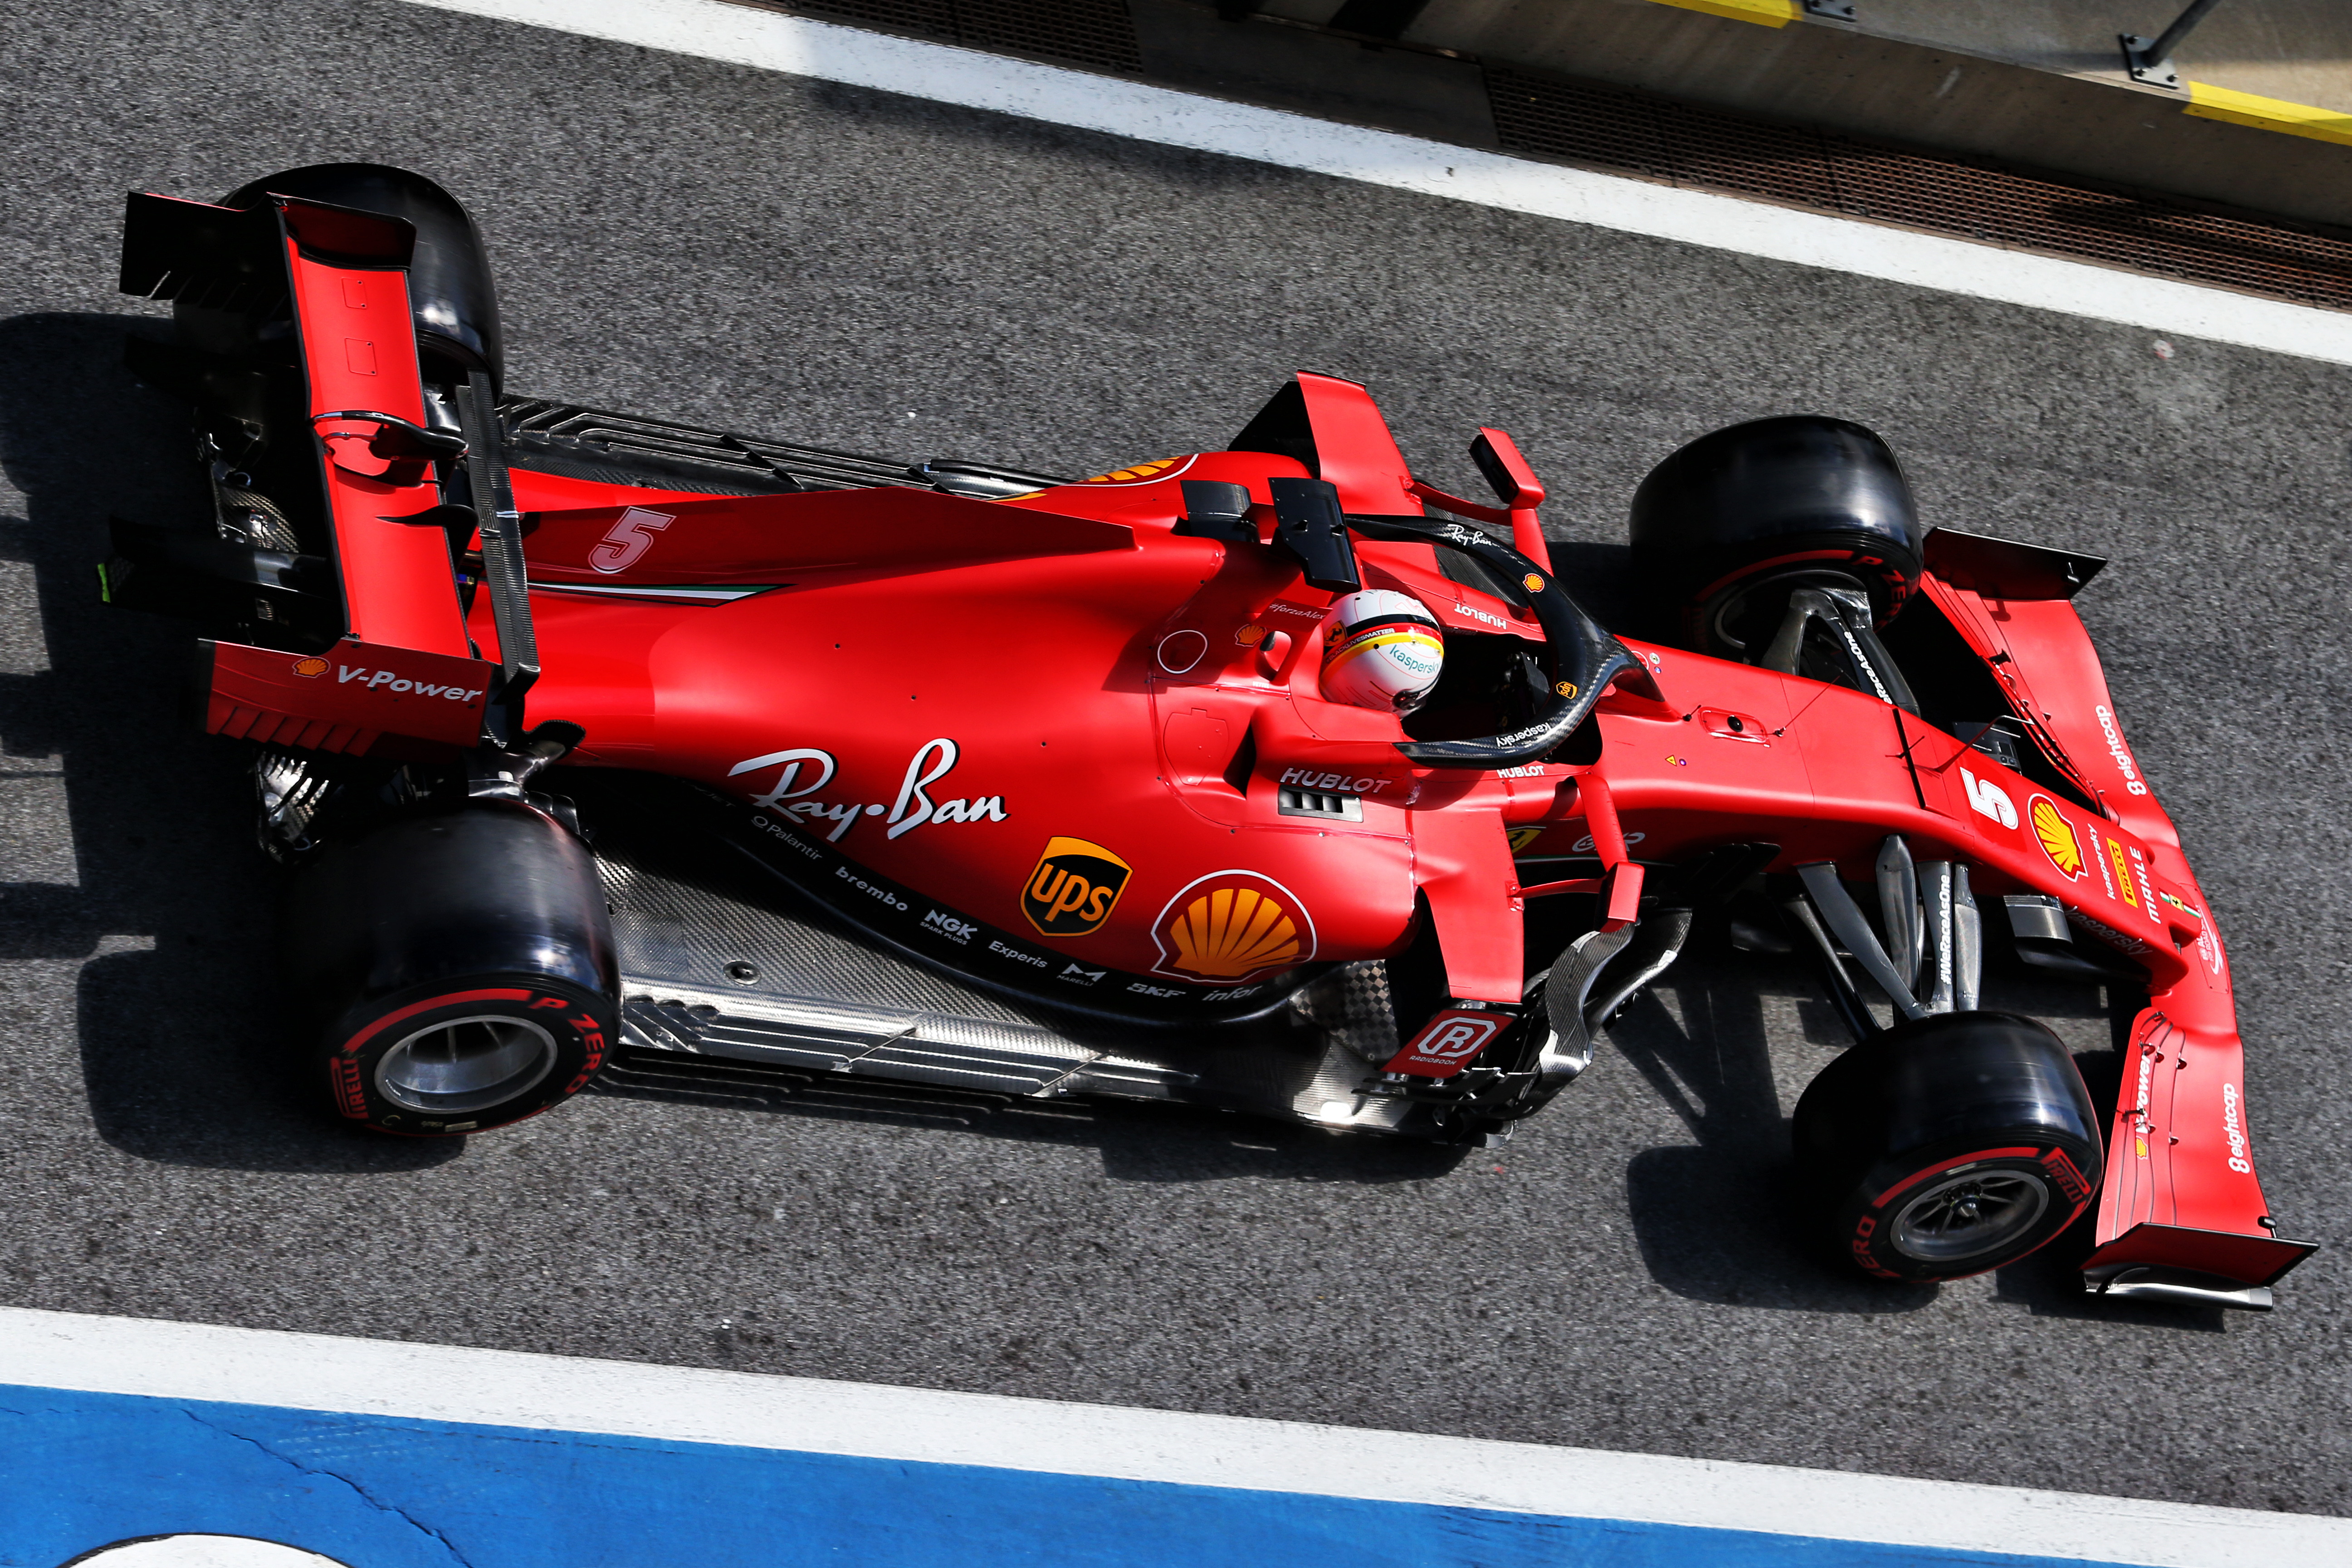 How Ferrari S 2020 Design Has Caused A Perfect Storm The Race